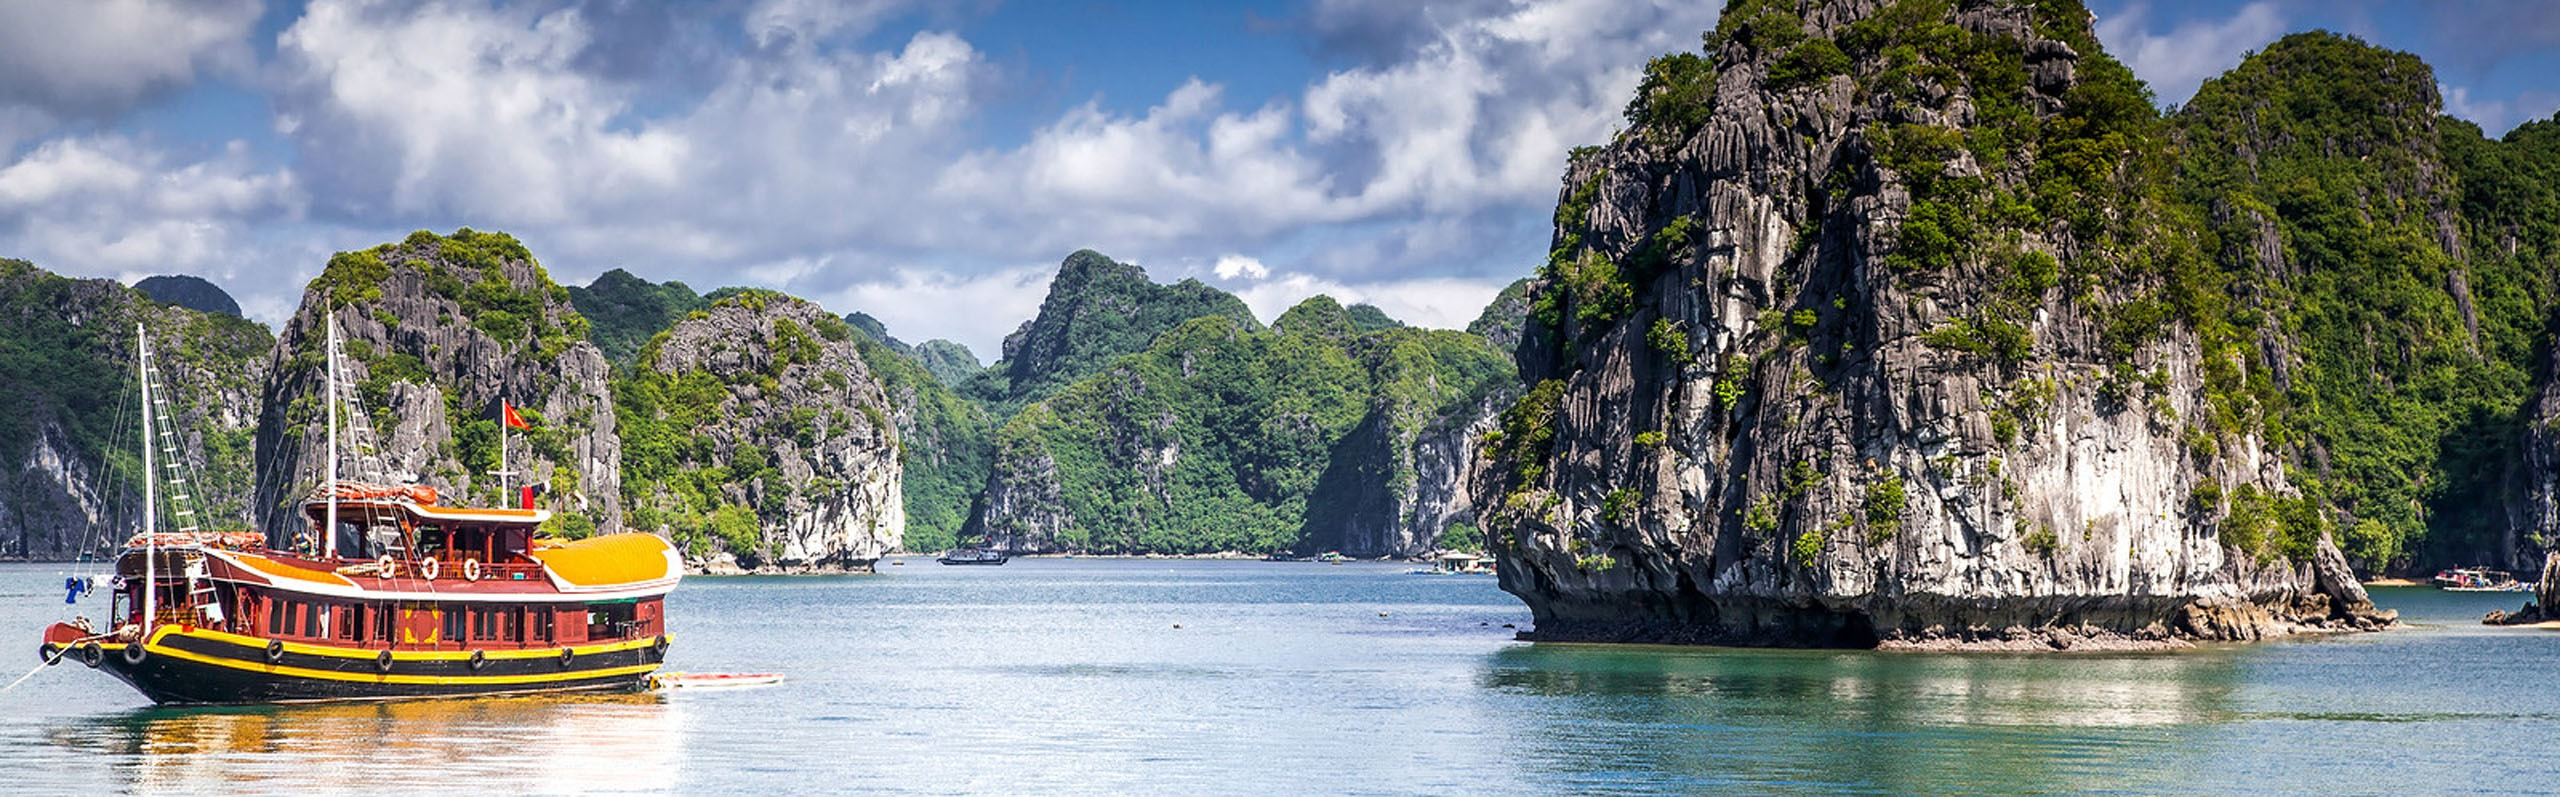 5 Things to Know When Choosing Your Halong Bay Cruise in Vietnam